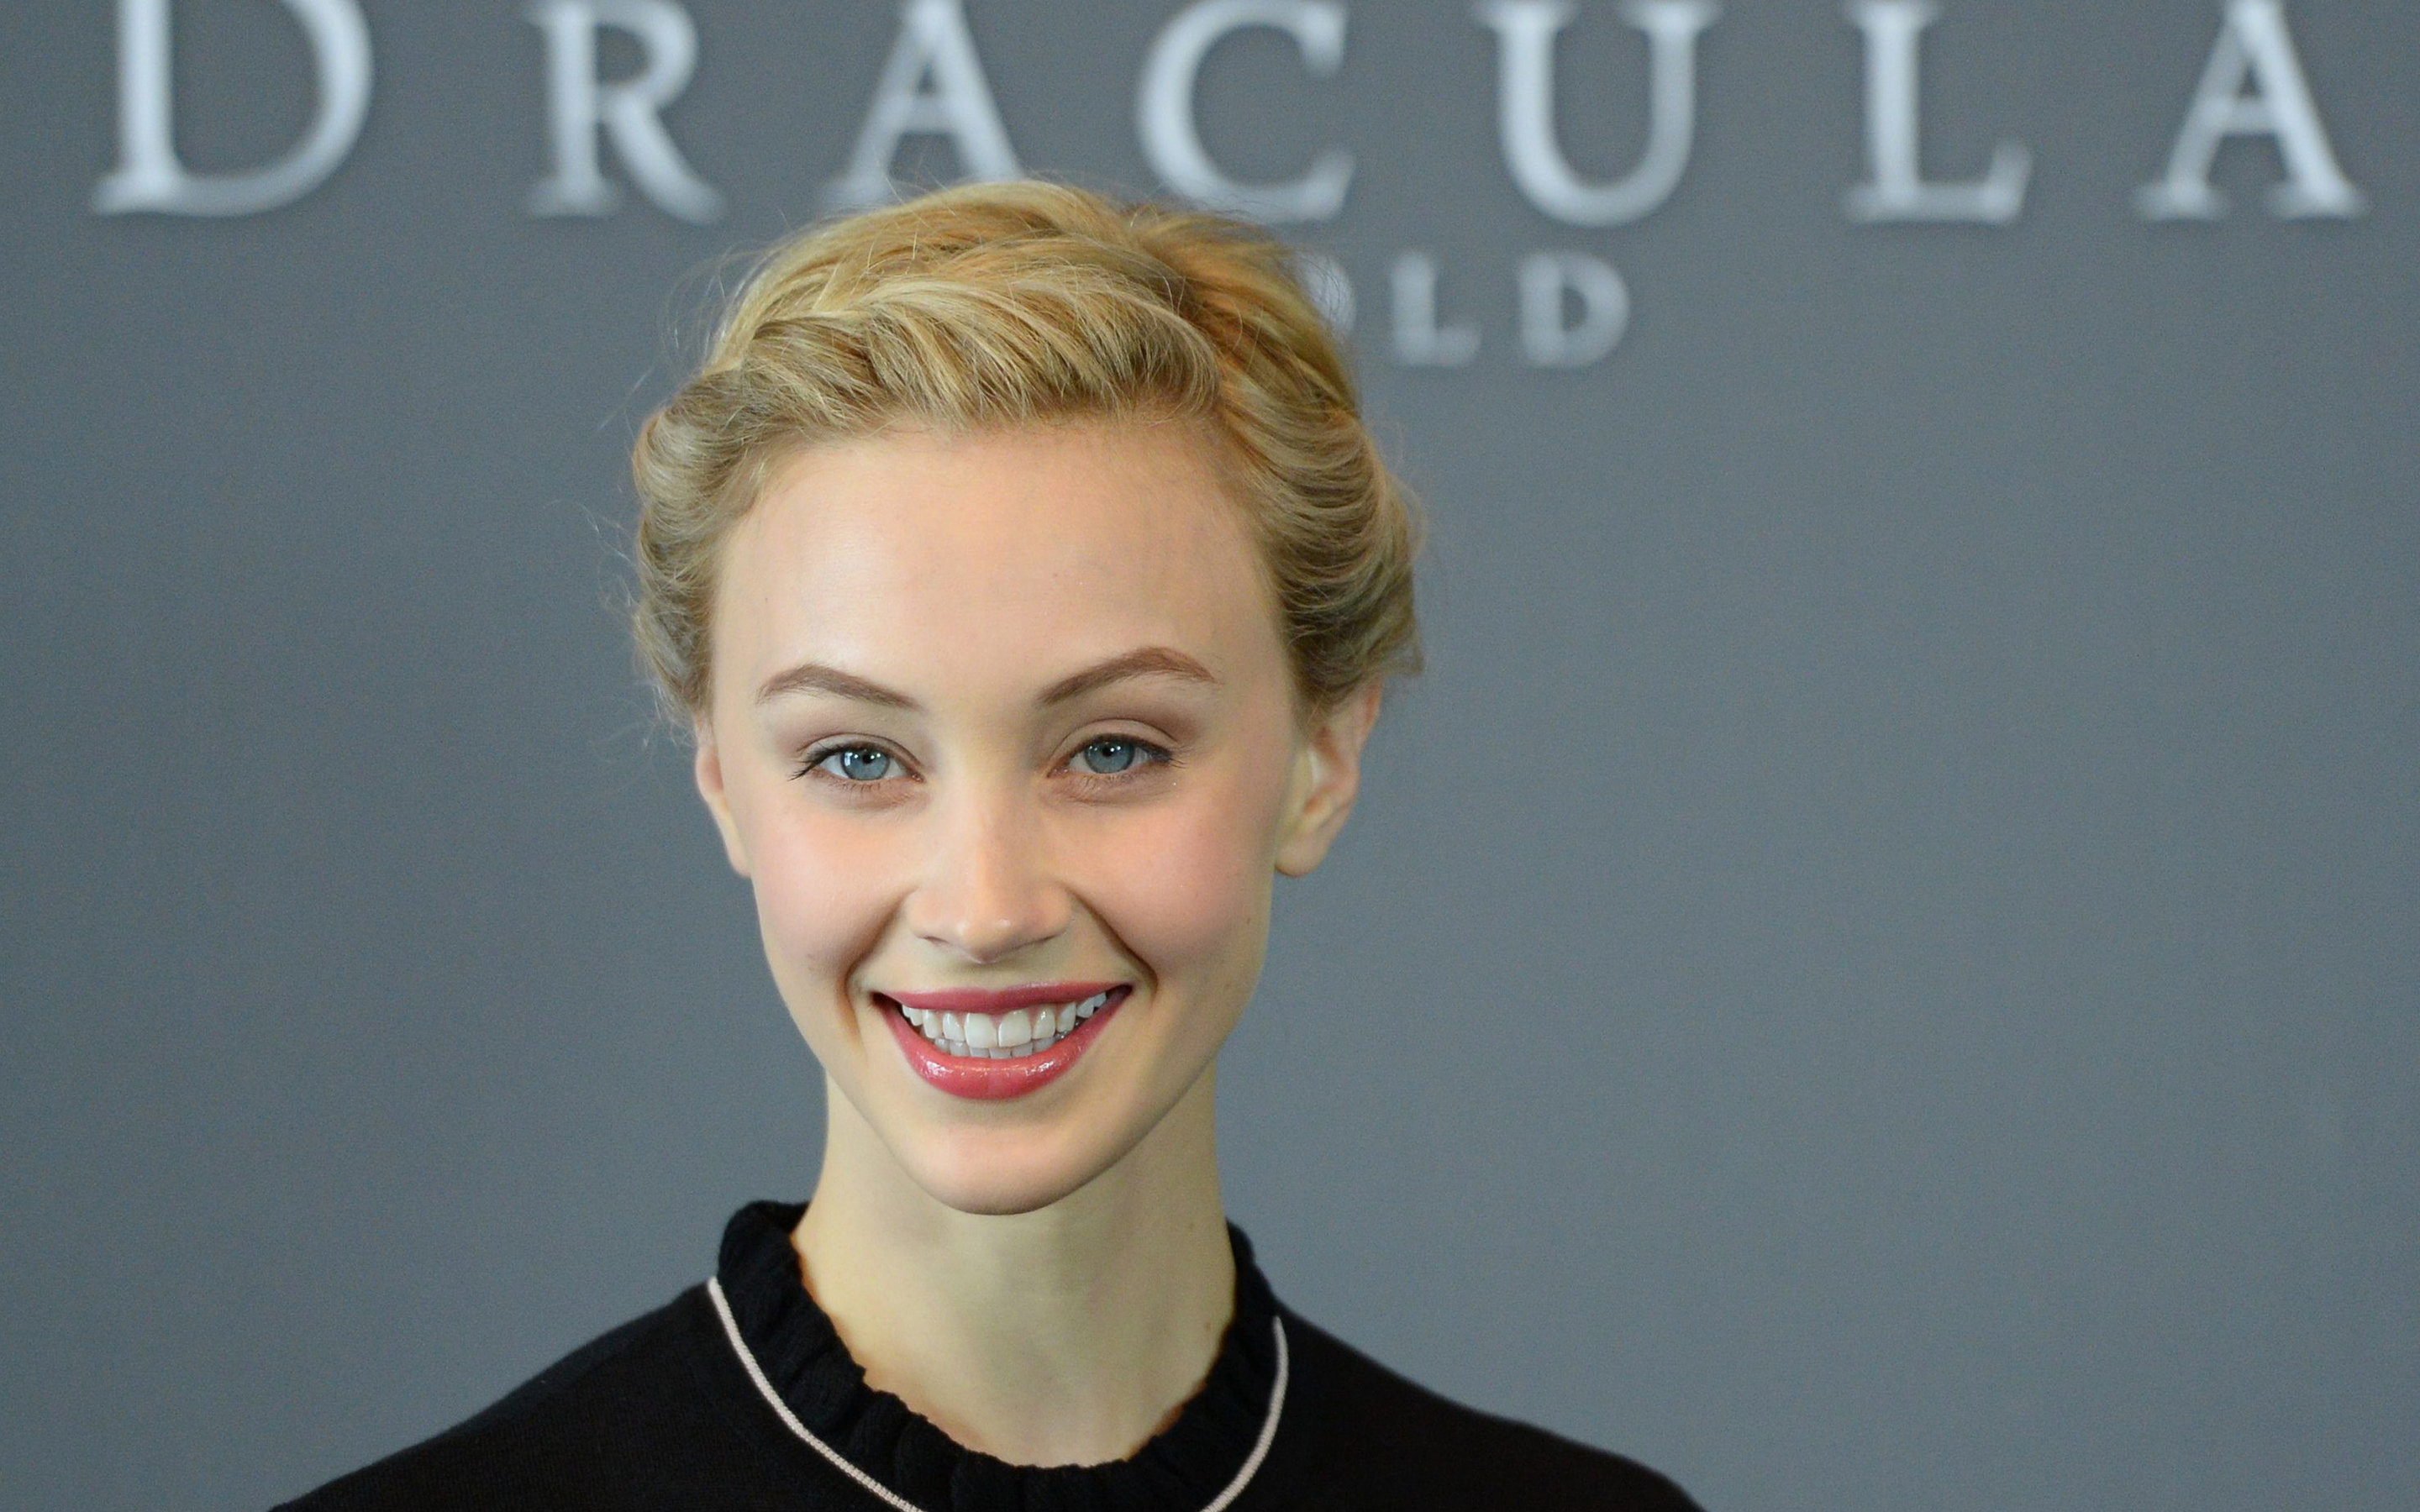 Awesome Sarah Gadon free wallpaper ID:320225 for hd 2880x1800 PC